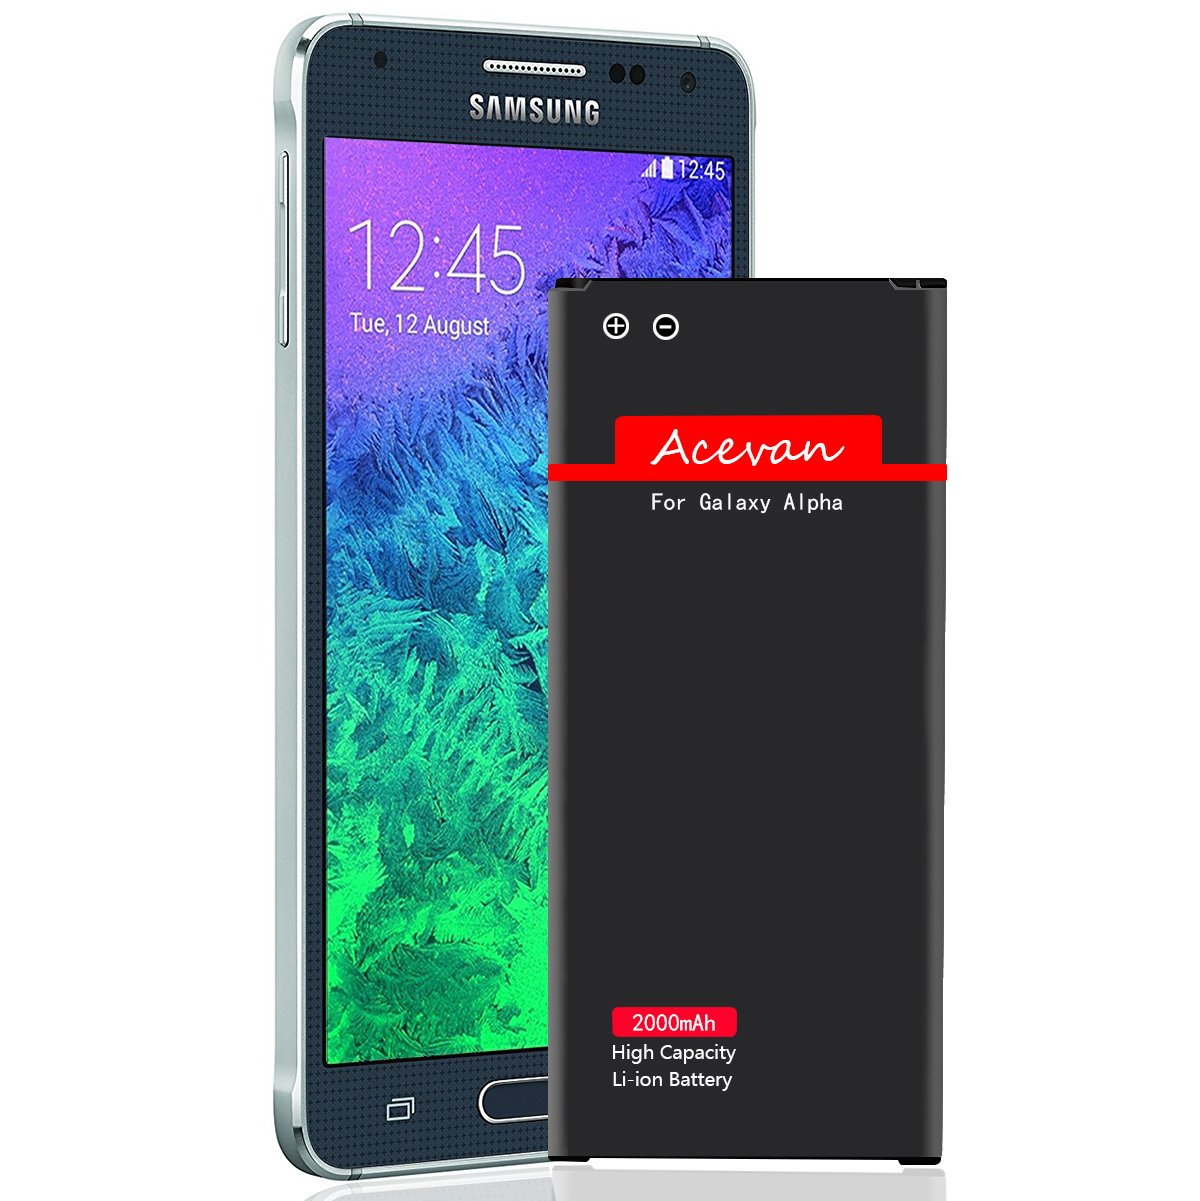 Acevan Galaxy Alpha Battery G850 2000mAh Li-ion Battery Replacement for Samsung Galaxy Alpha, SM - G850A (AT&T), G850T (T-Mobile), G850F, G850H, G850M, G850W, G8508S, G8509V [3 Year Warranty] Galaxy Alpha G850